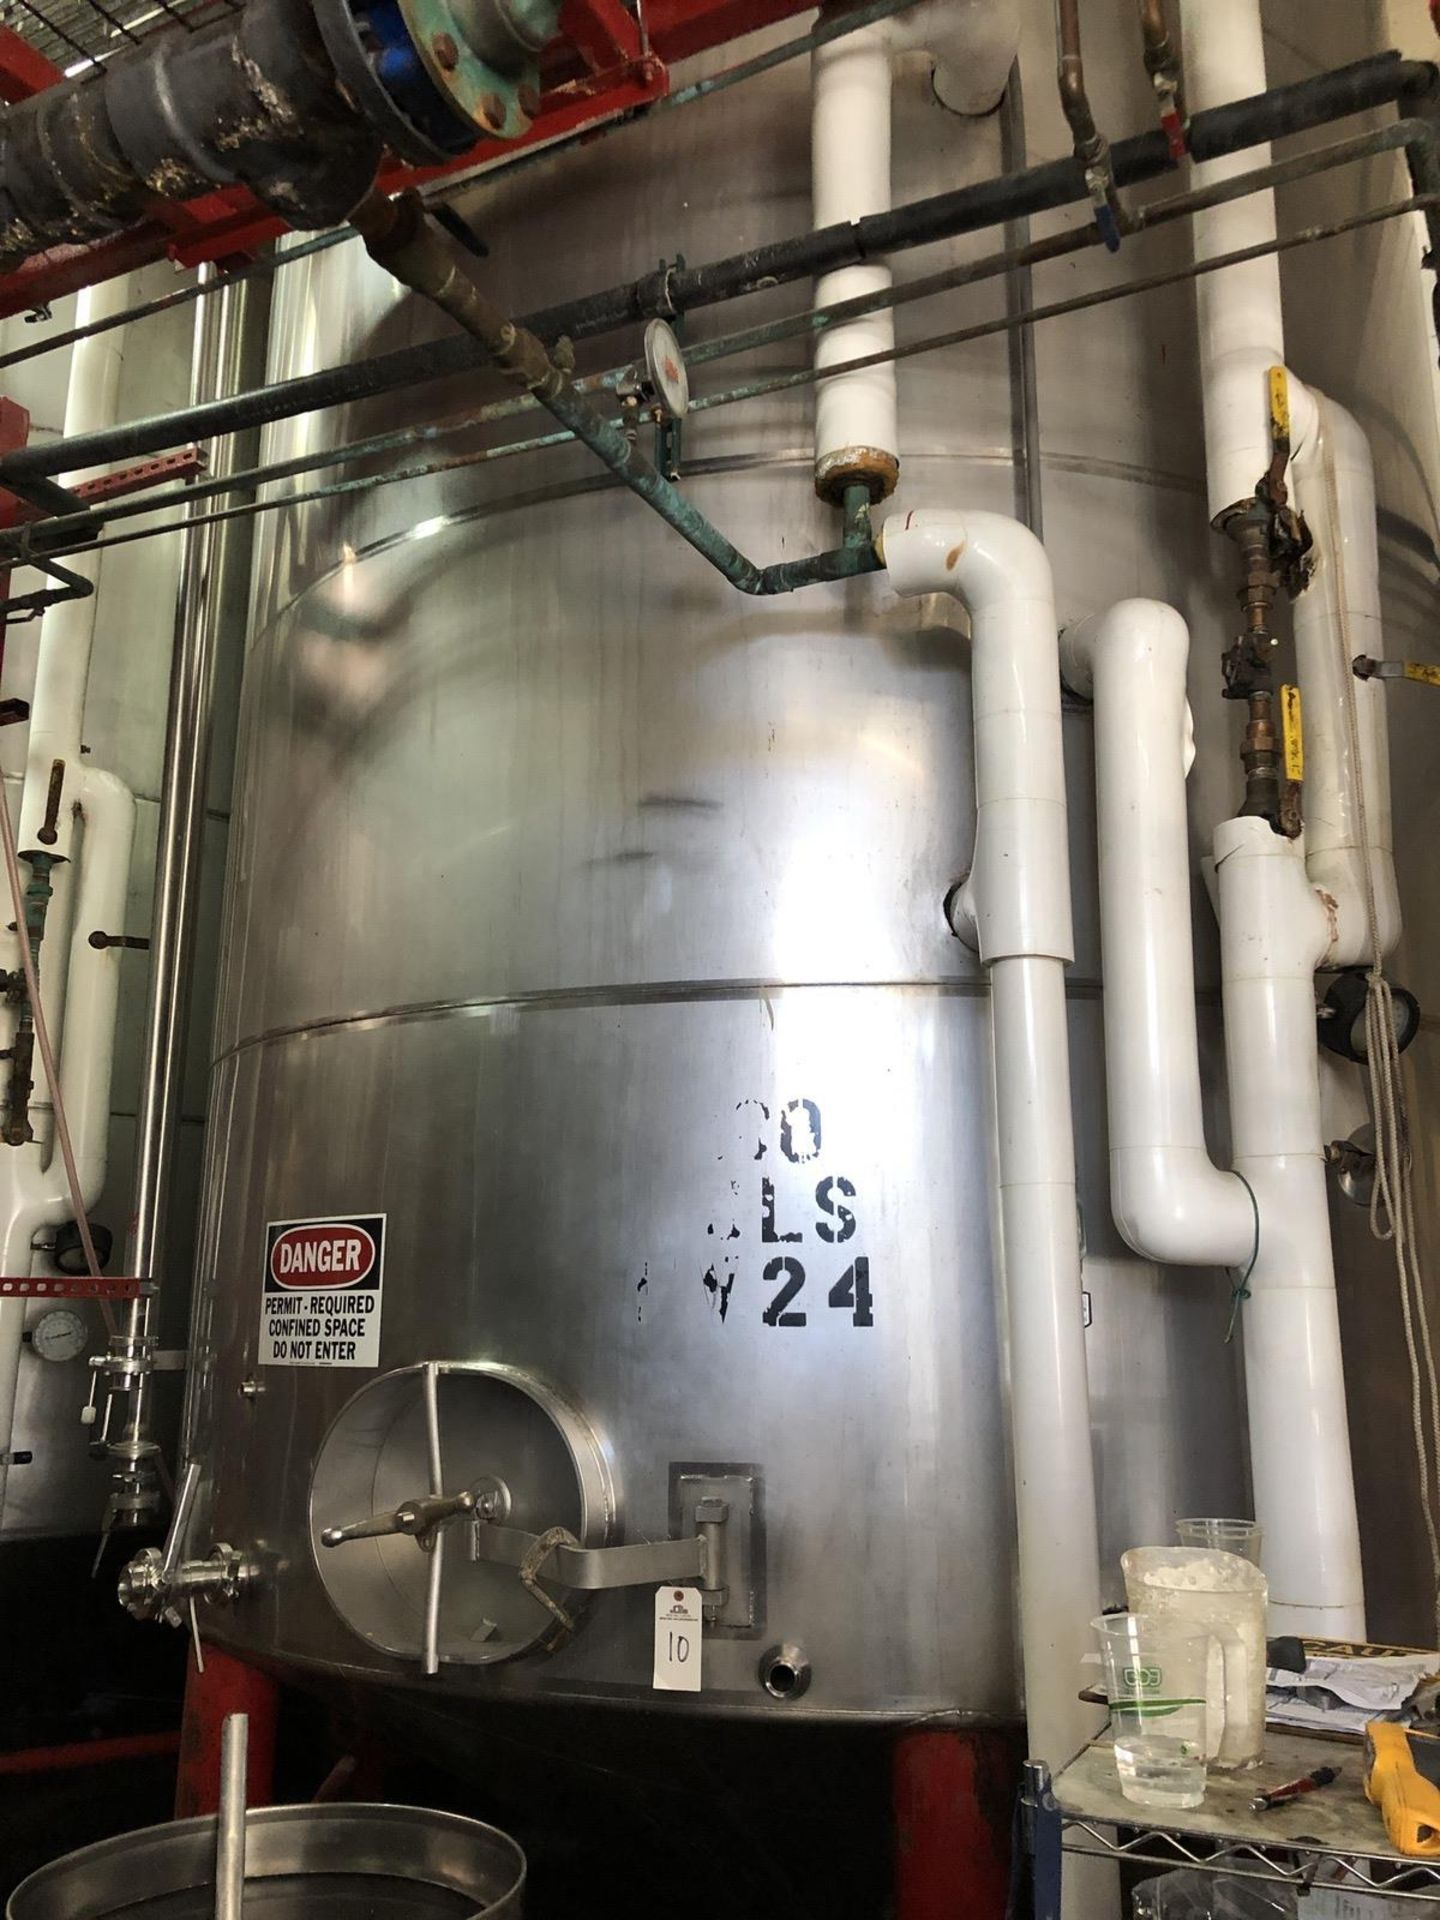 Lot 10 - Santa Rosa 200 BBL Fermenter, Cone Bottom, Glycol Jacketed, Stainless Steel, Approx | Rig Fee: $3300